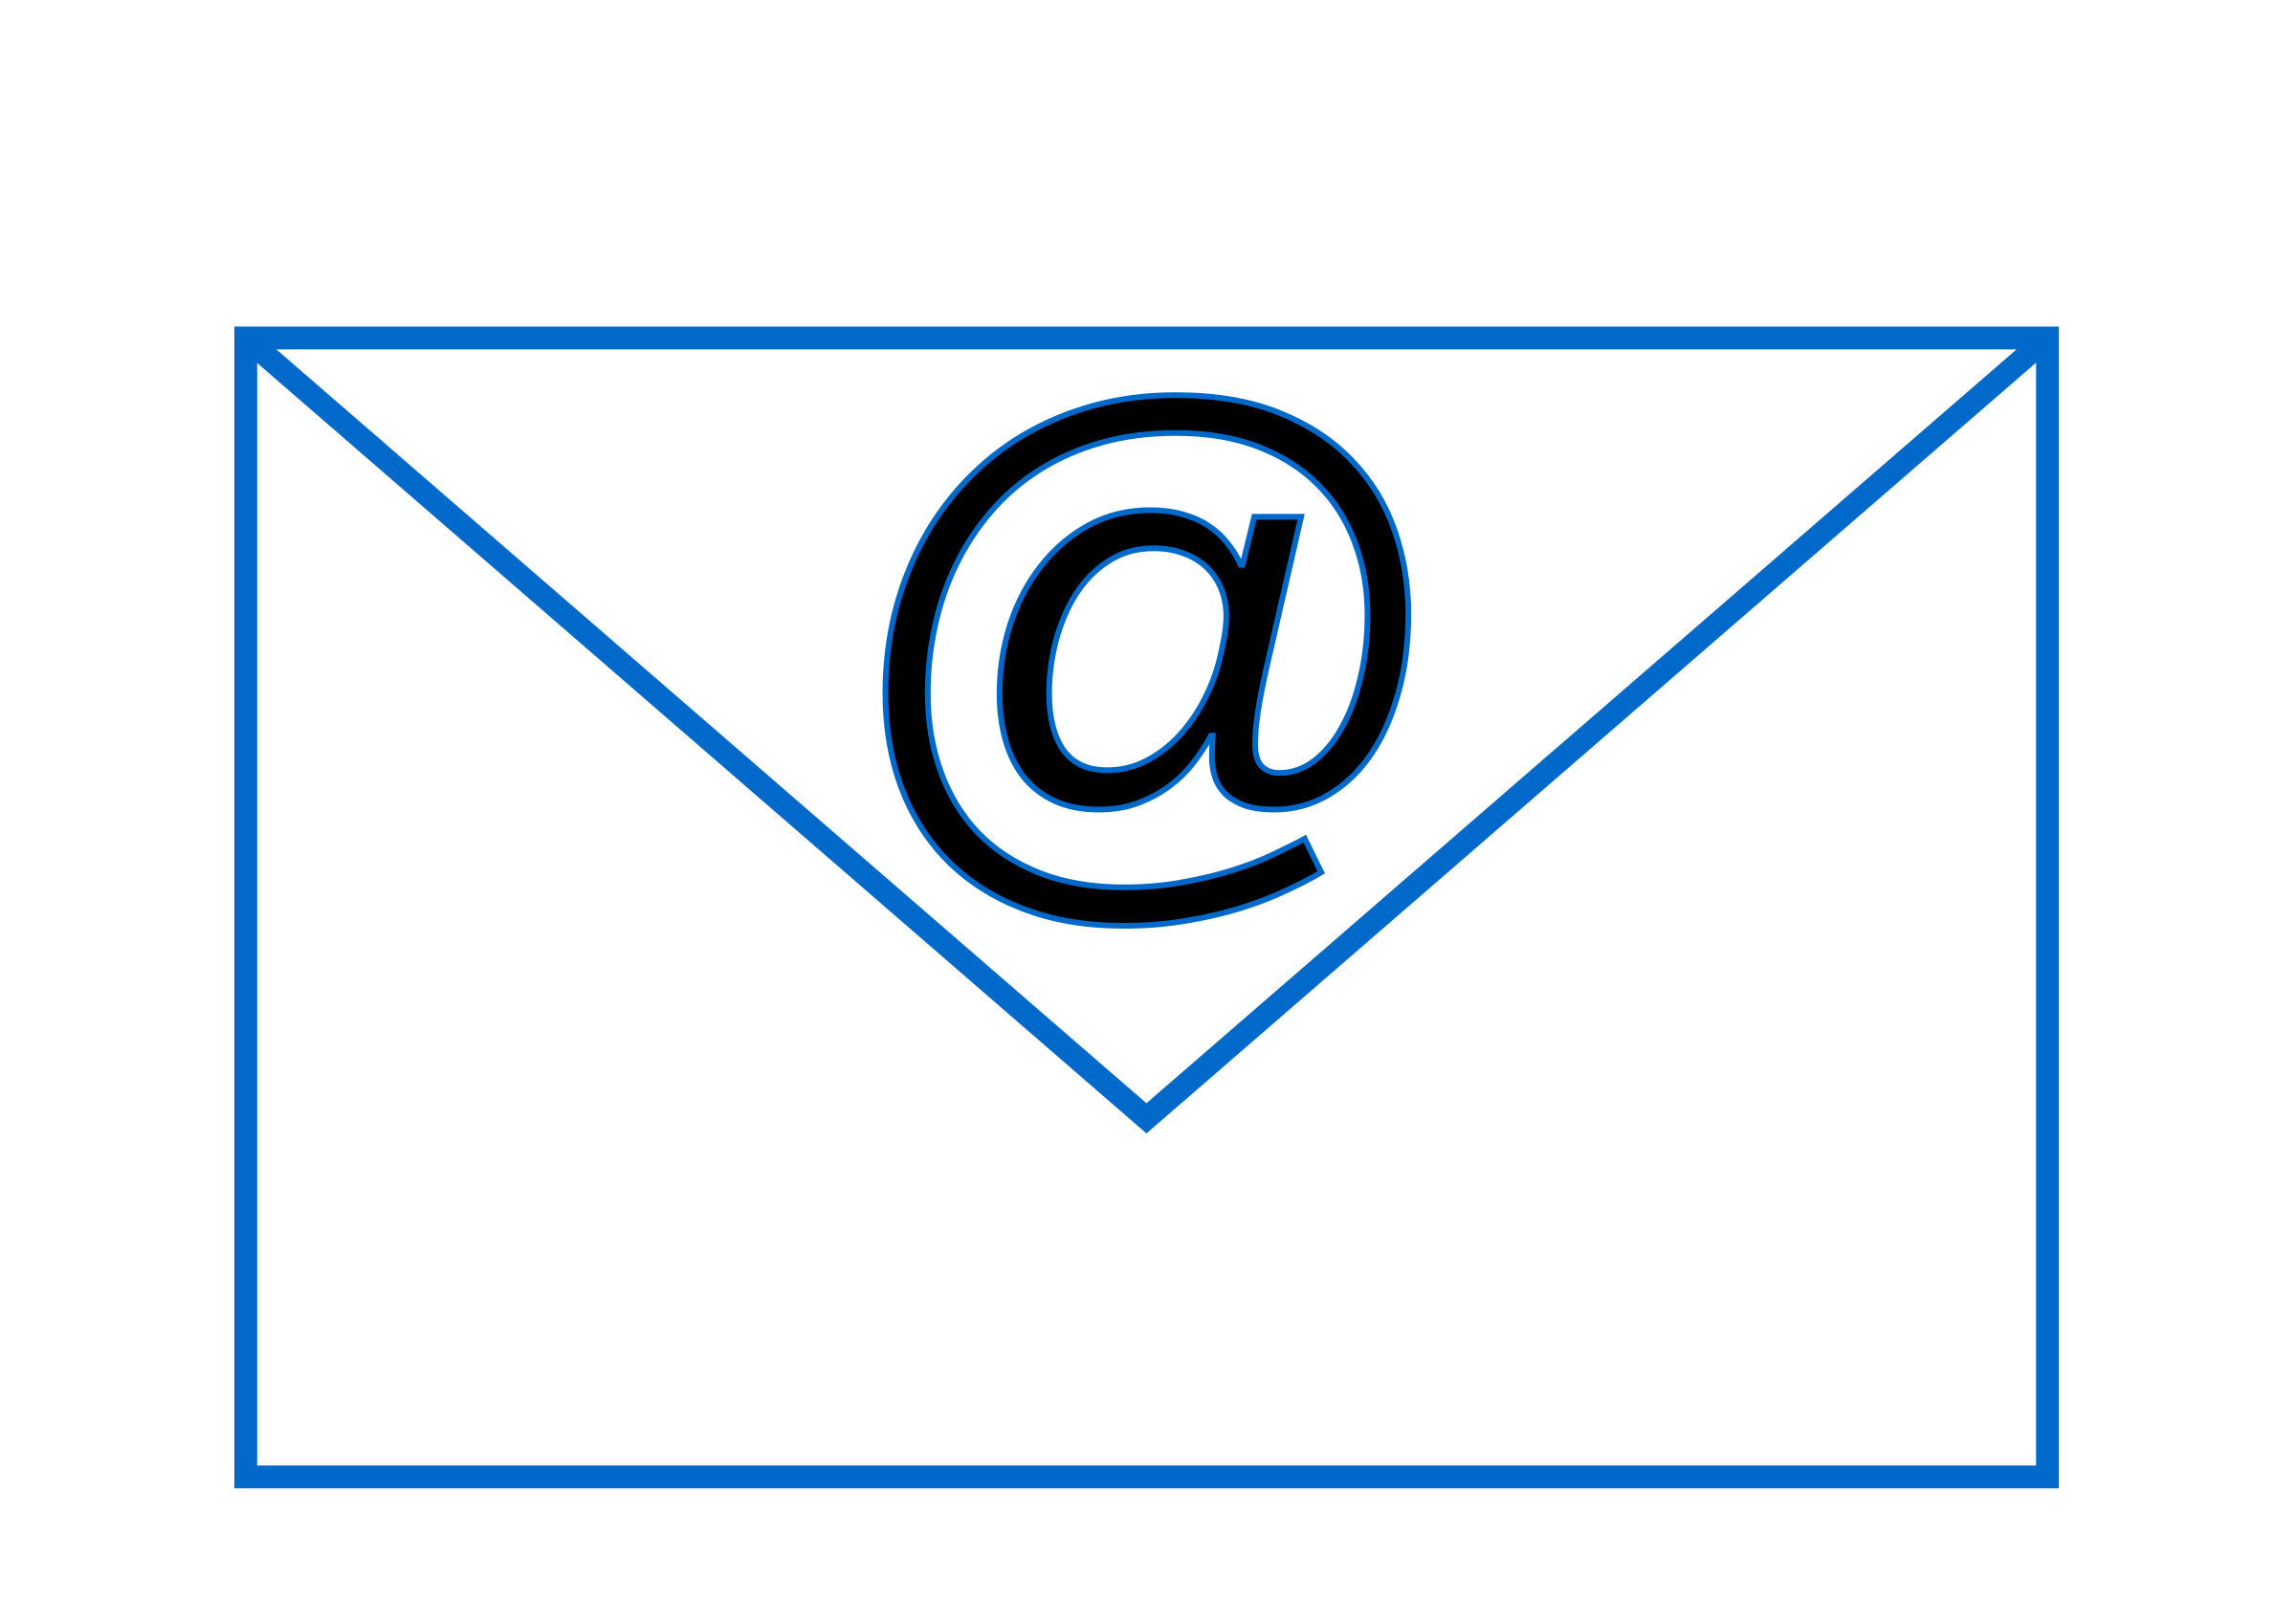 Email simple big image. Mail clipart mail icon